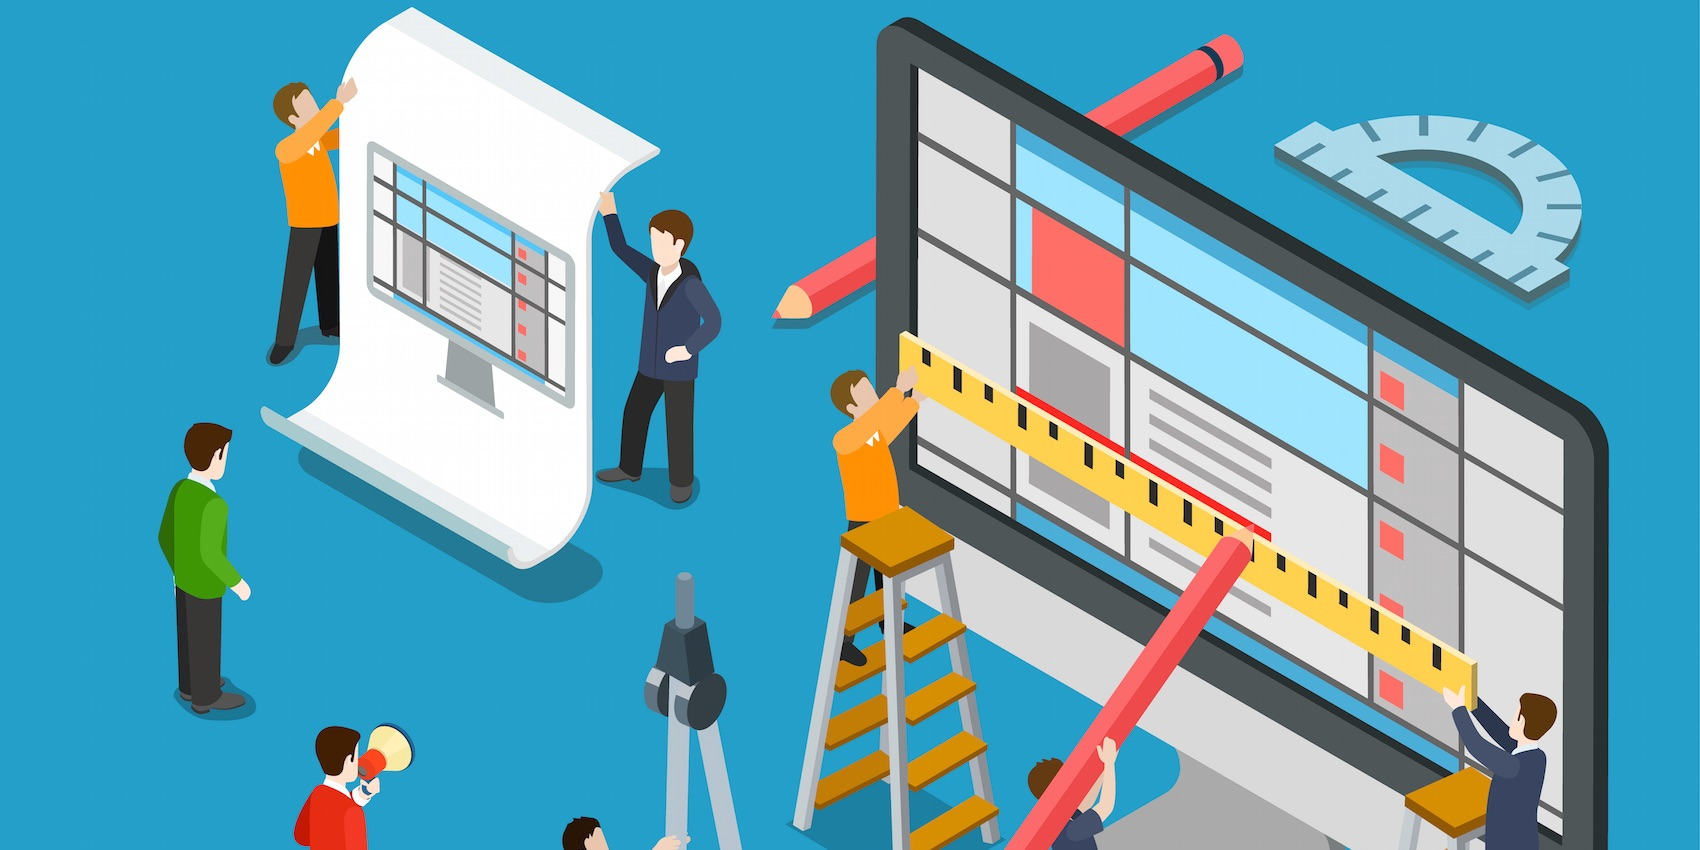 10 do s and don ts of ui and ux design